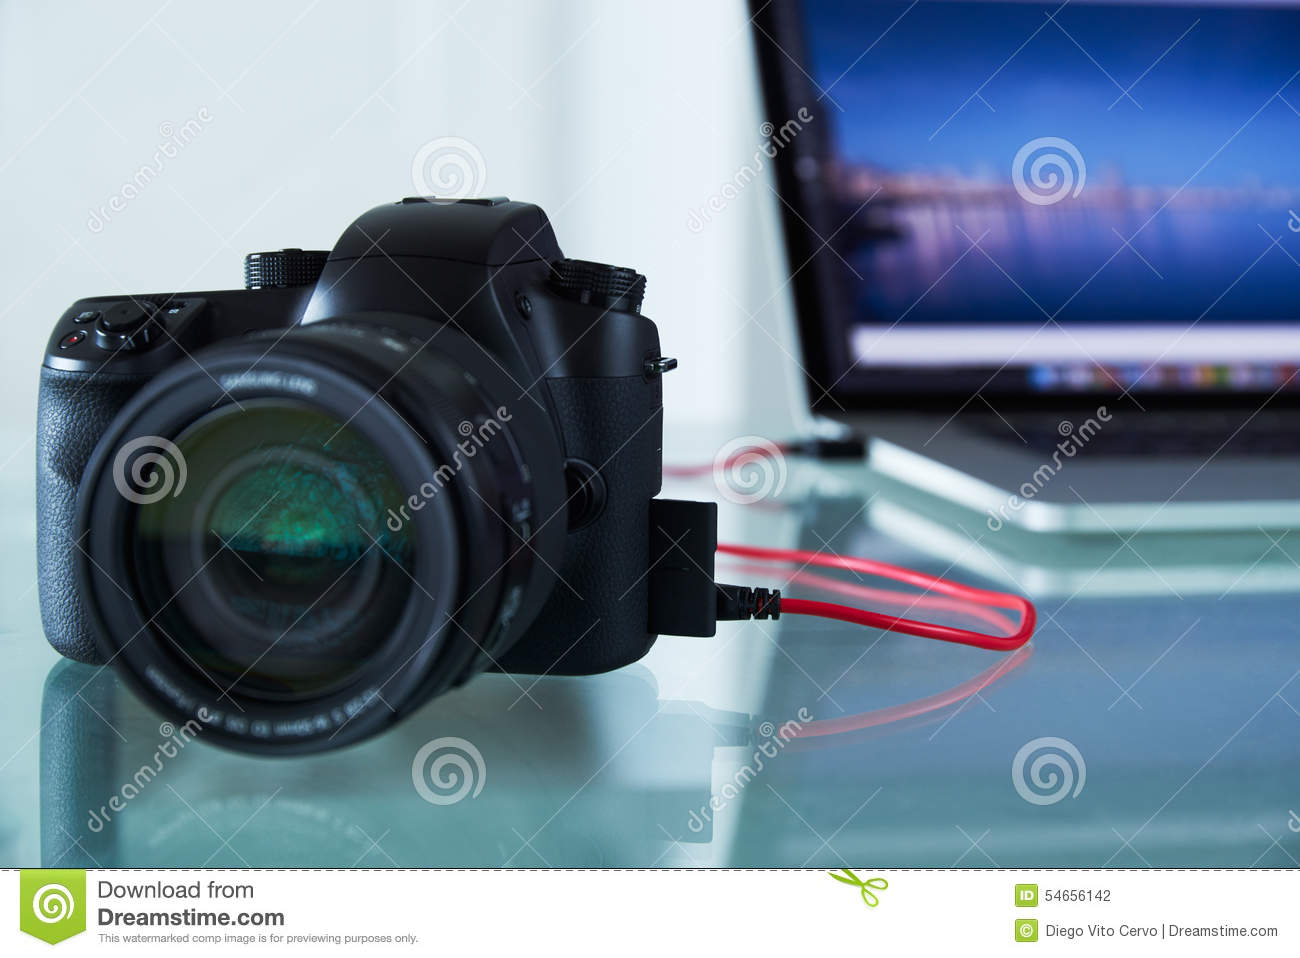 Camera To Computer Cable : Dslr photo camera tethered to laptop computer with usb